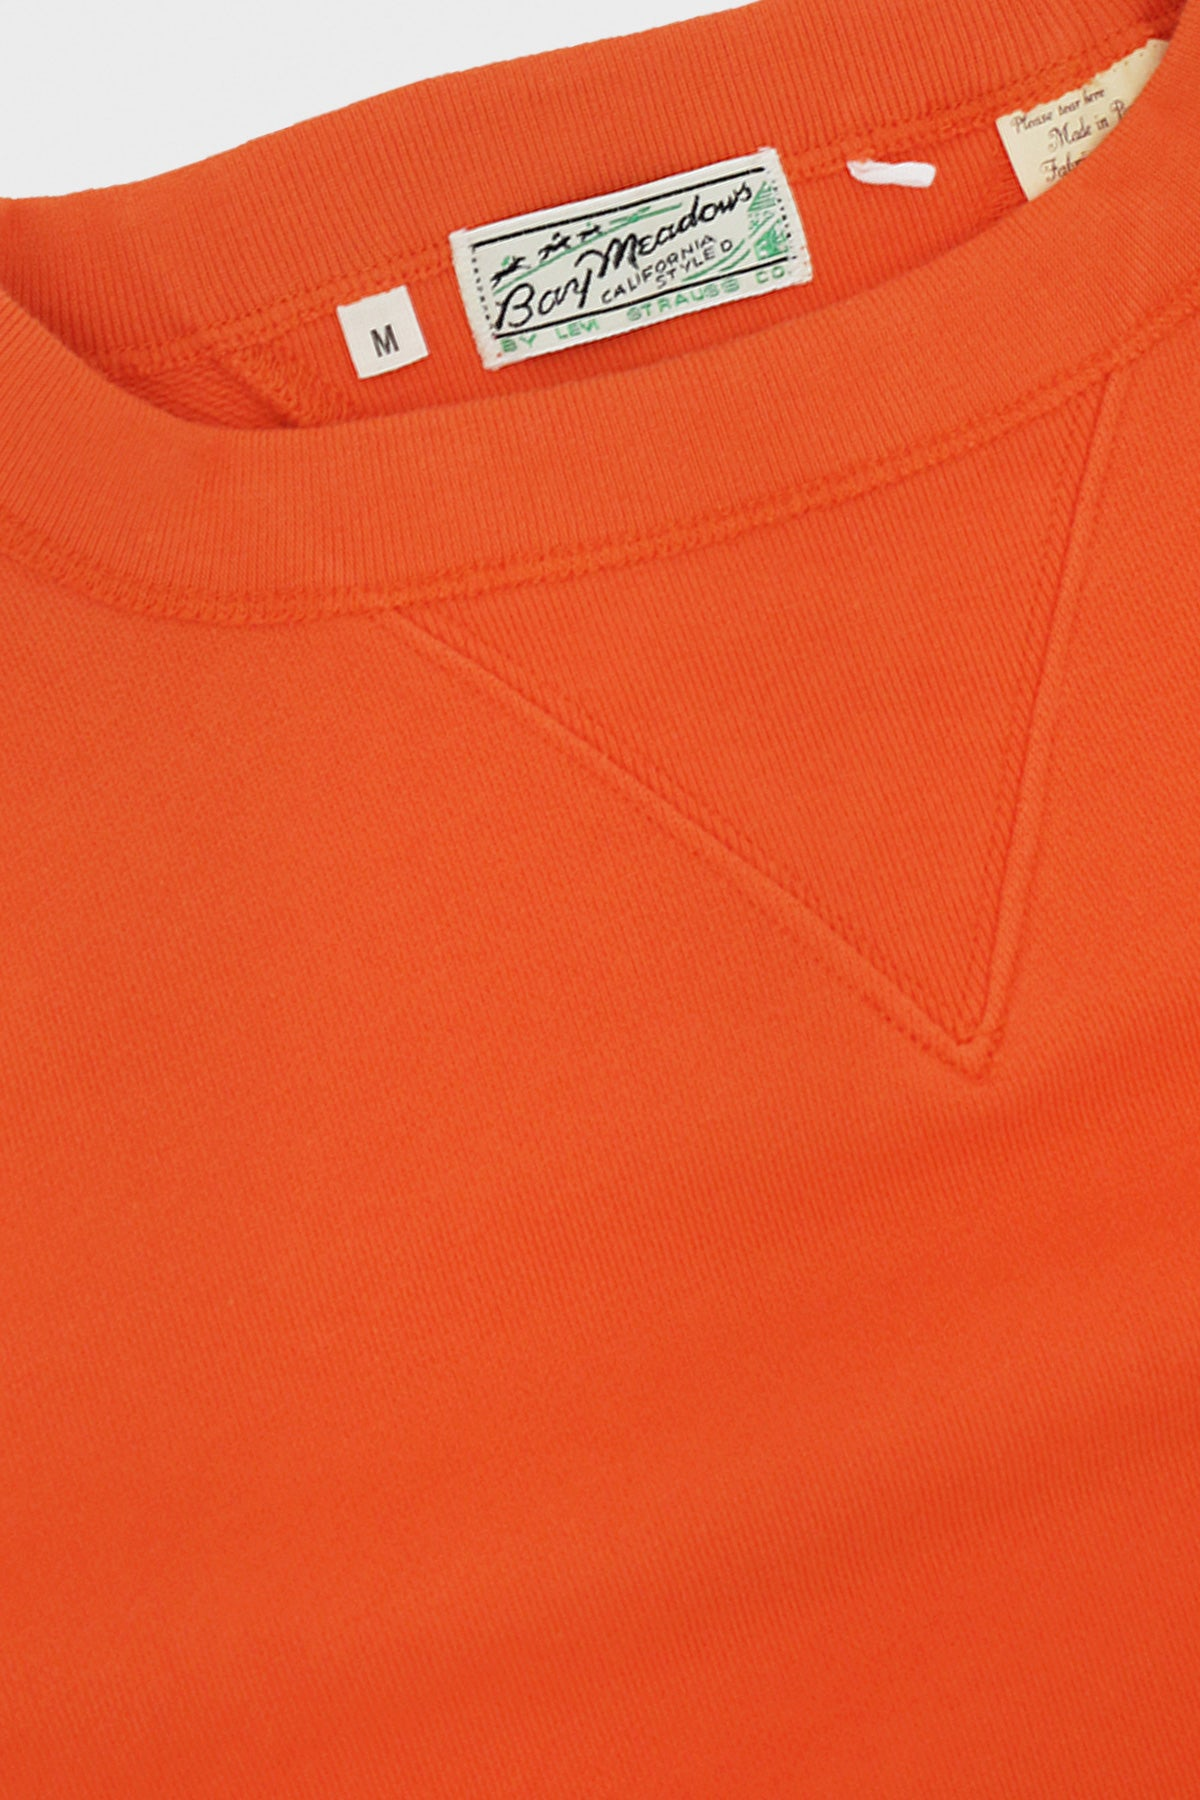 Levi's Vintage Clothing - Bay Meadows Sweatshirt - Acid Orange - Canoe Club